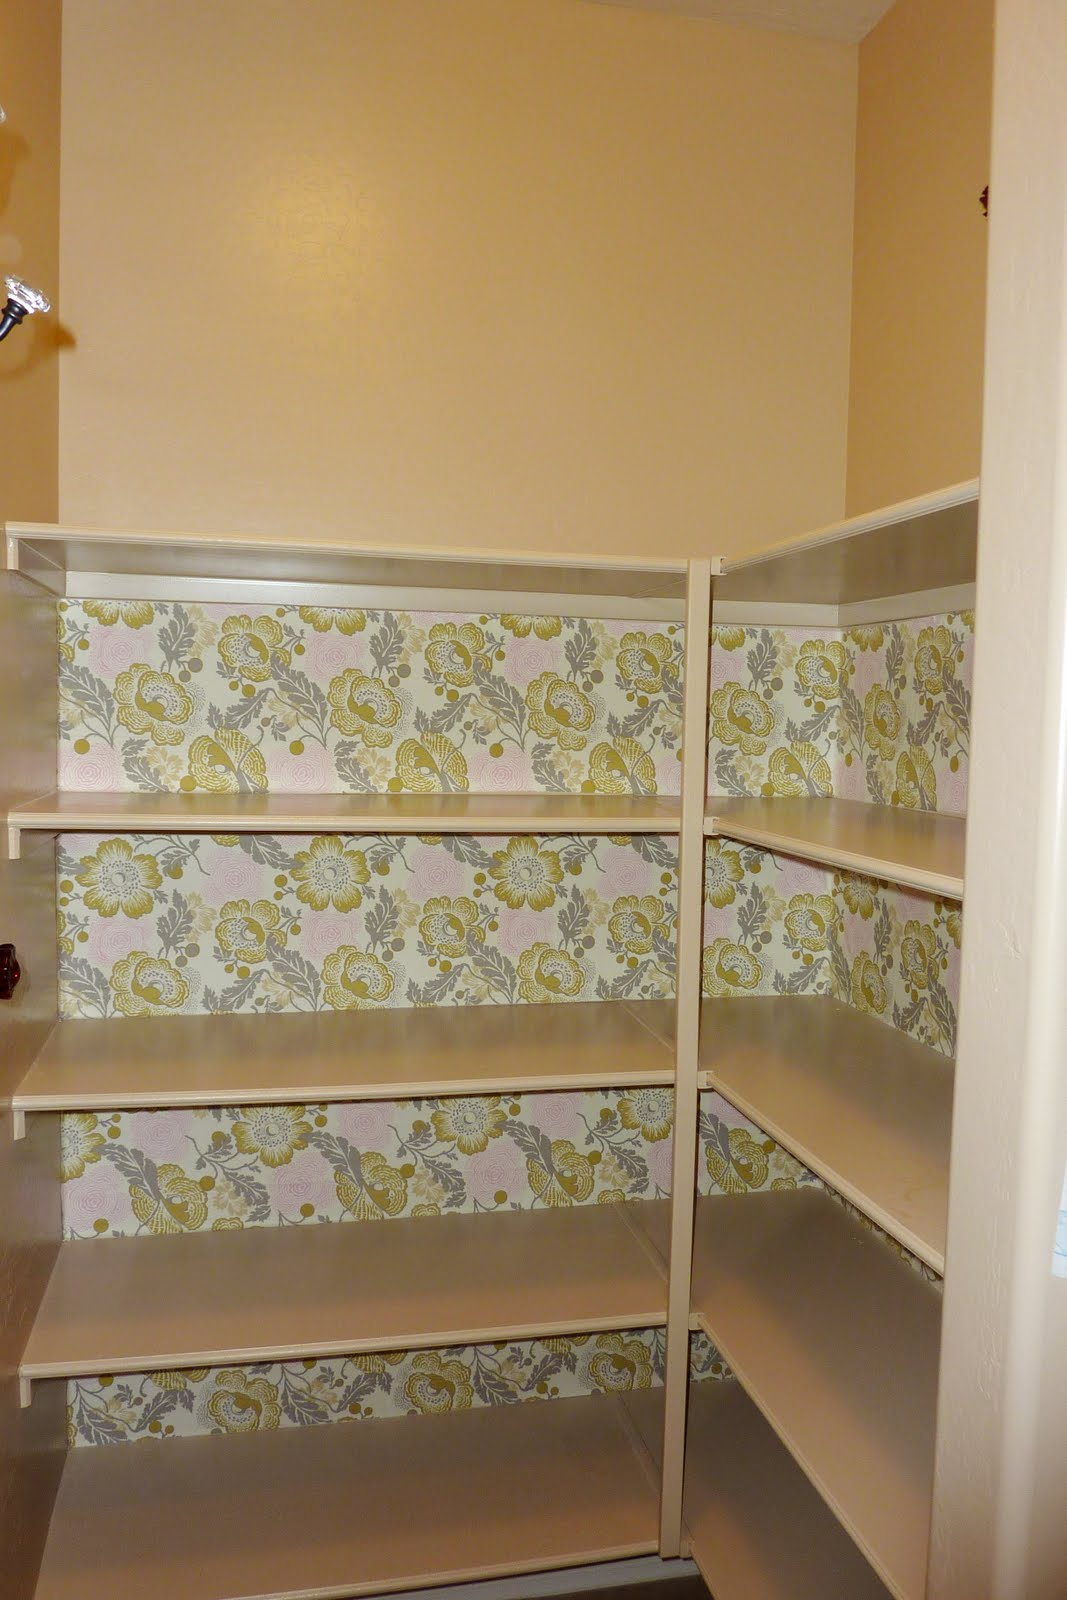 Contact Paper For Walls amber lane living: pantry redo, with mod podged fabric contact paper